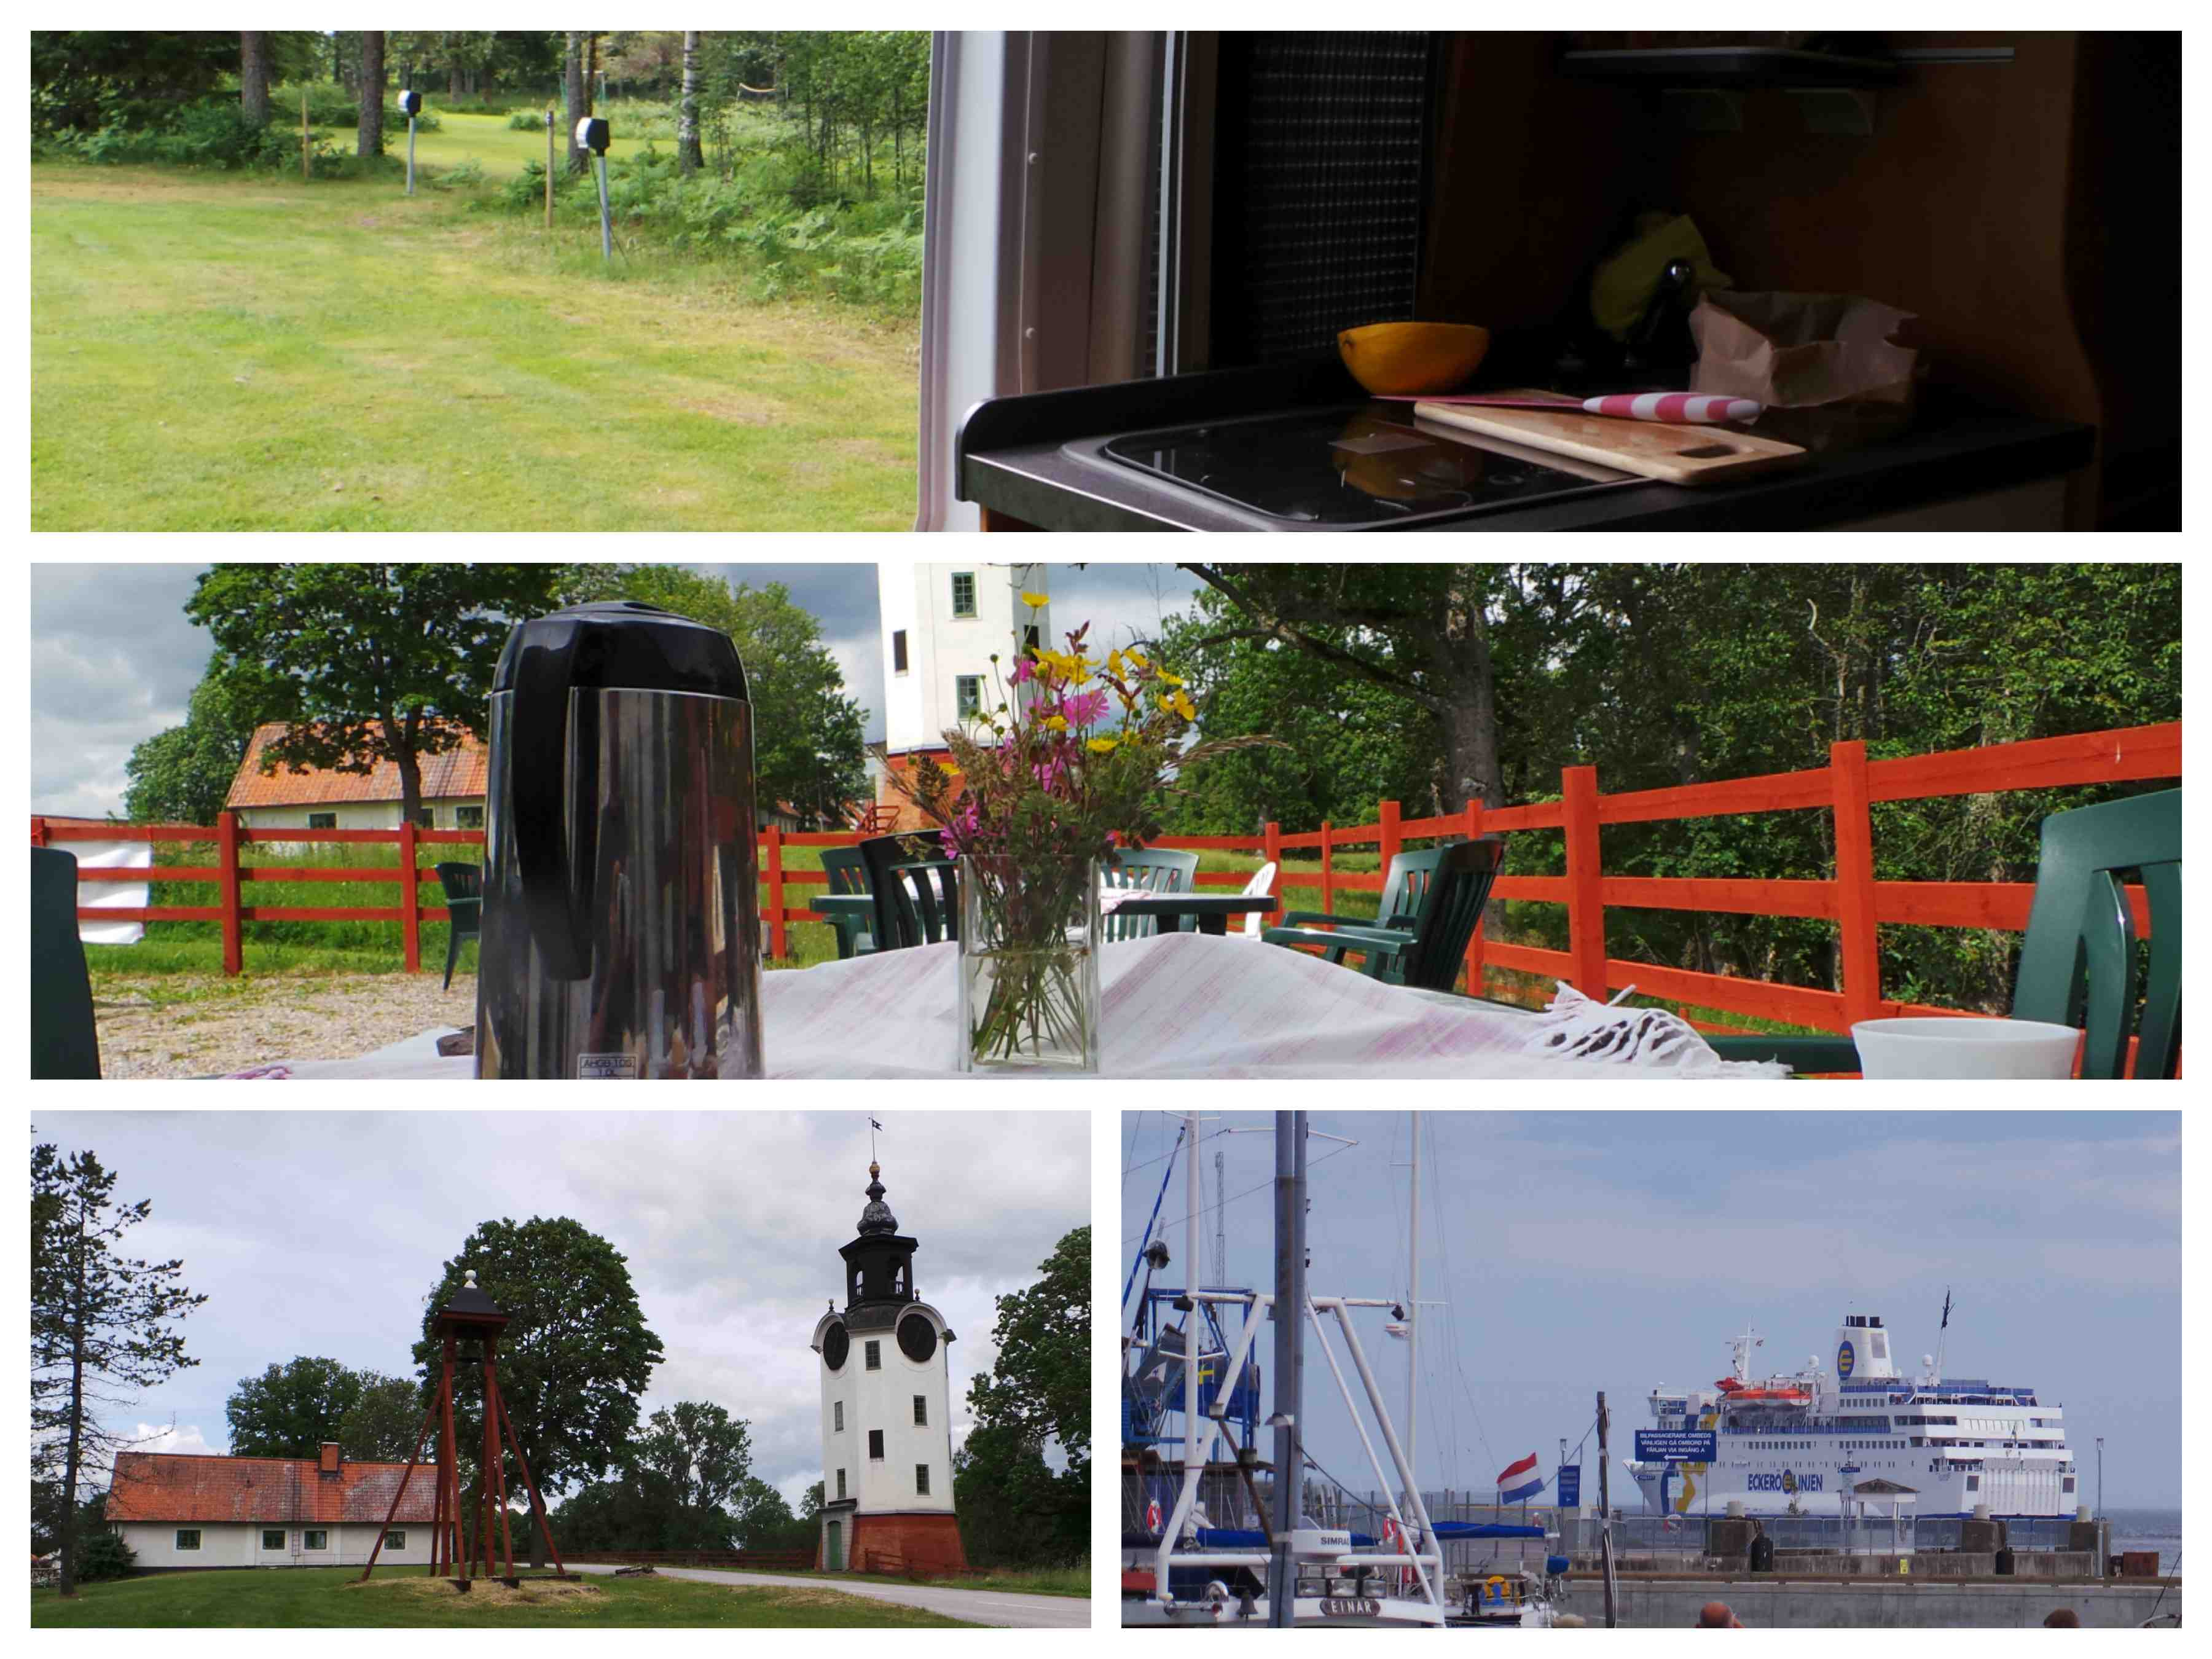 20150629_102430_Fotor_Collage